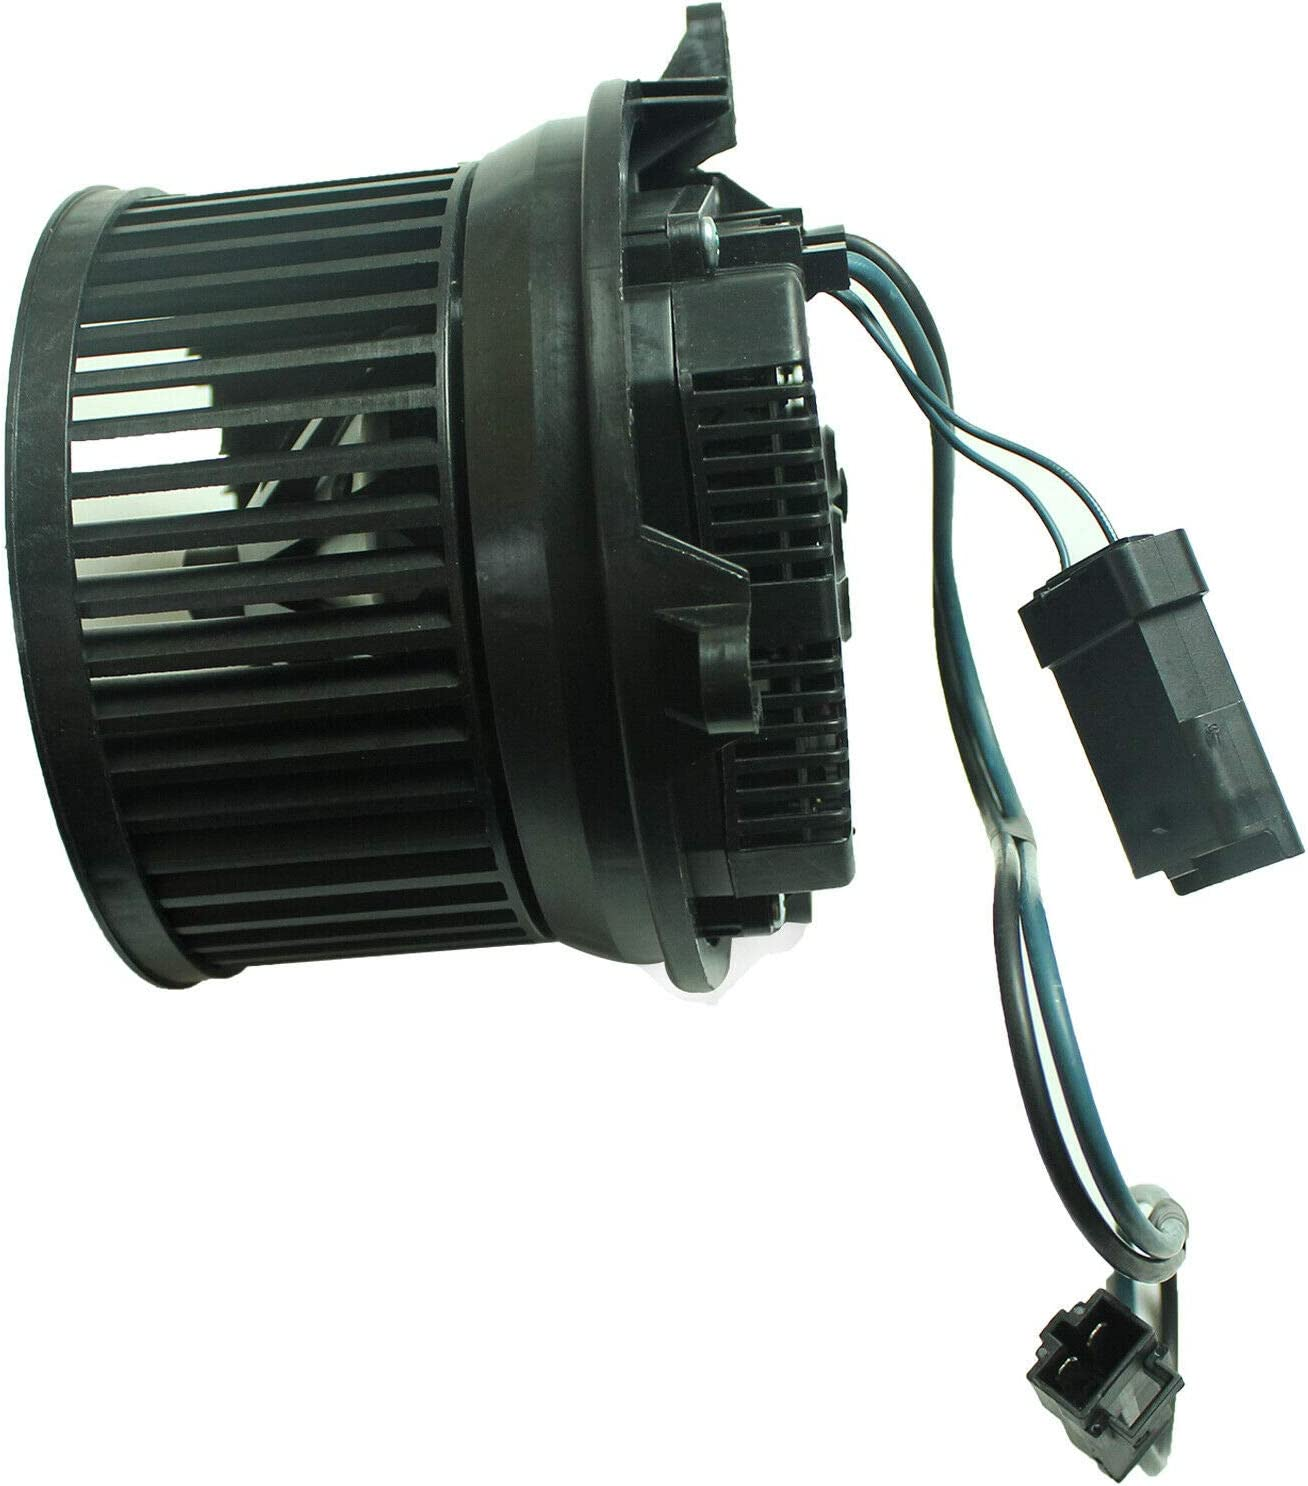 LOSTAR HVAC Blower Ranking integrated 1st place Motor Fits VCC3 Sales for sale 2003-2015 M2 106 Freightliner